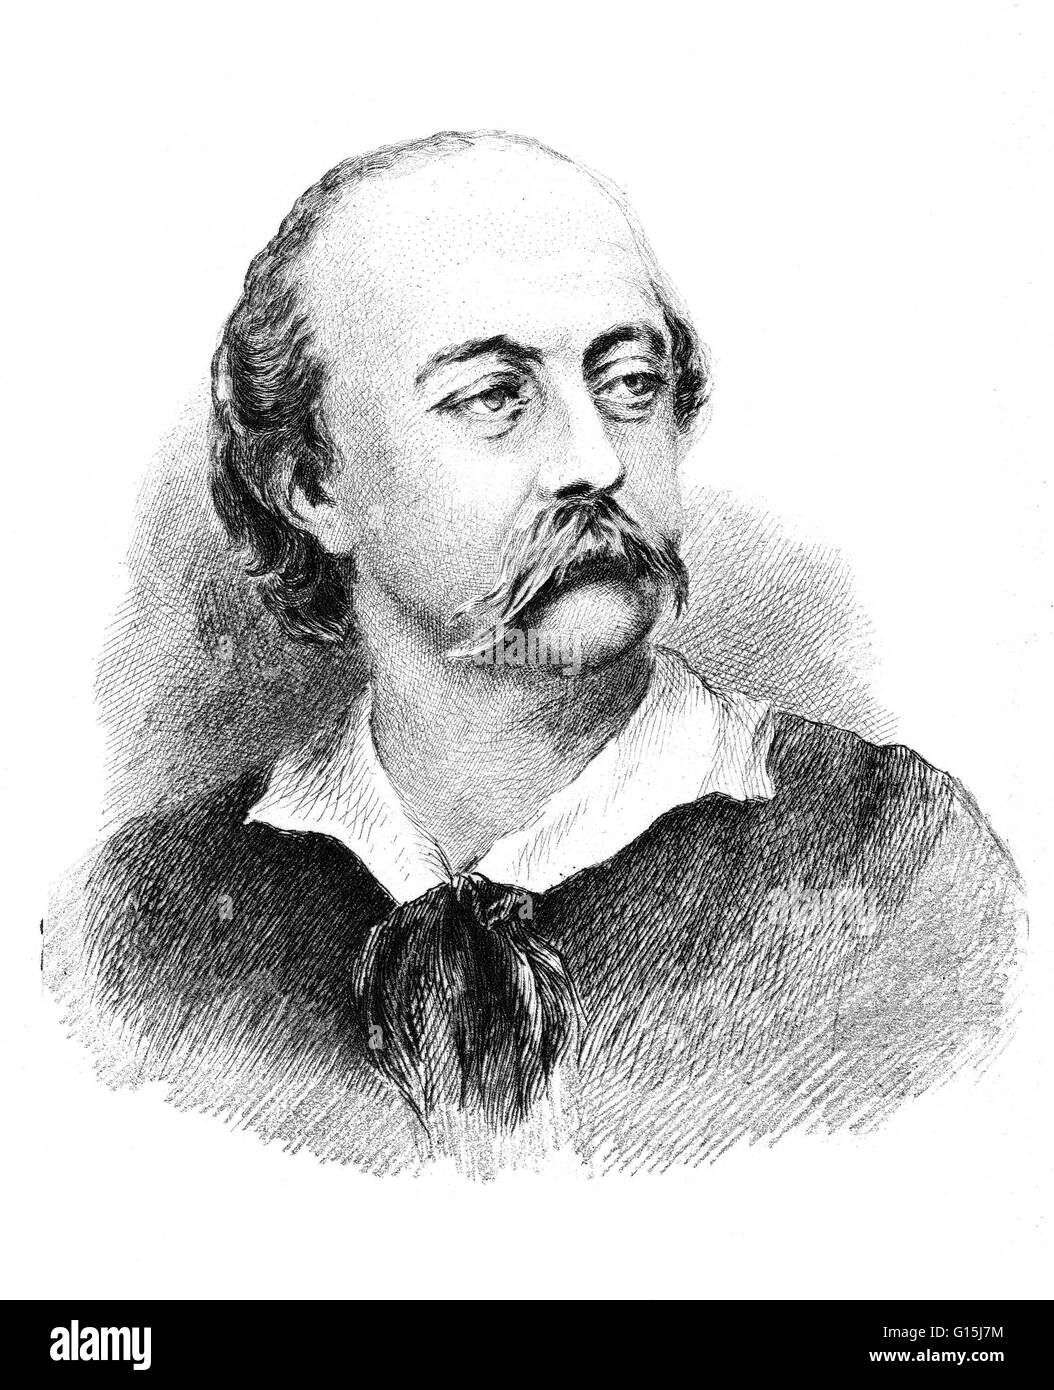 Gustave Flaubert 1821--1880, French novelist and short story writer, regarded as a leader of the 19th century naturalist - Stock Image